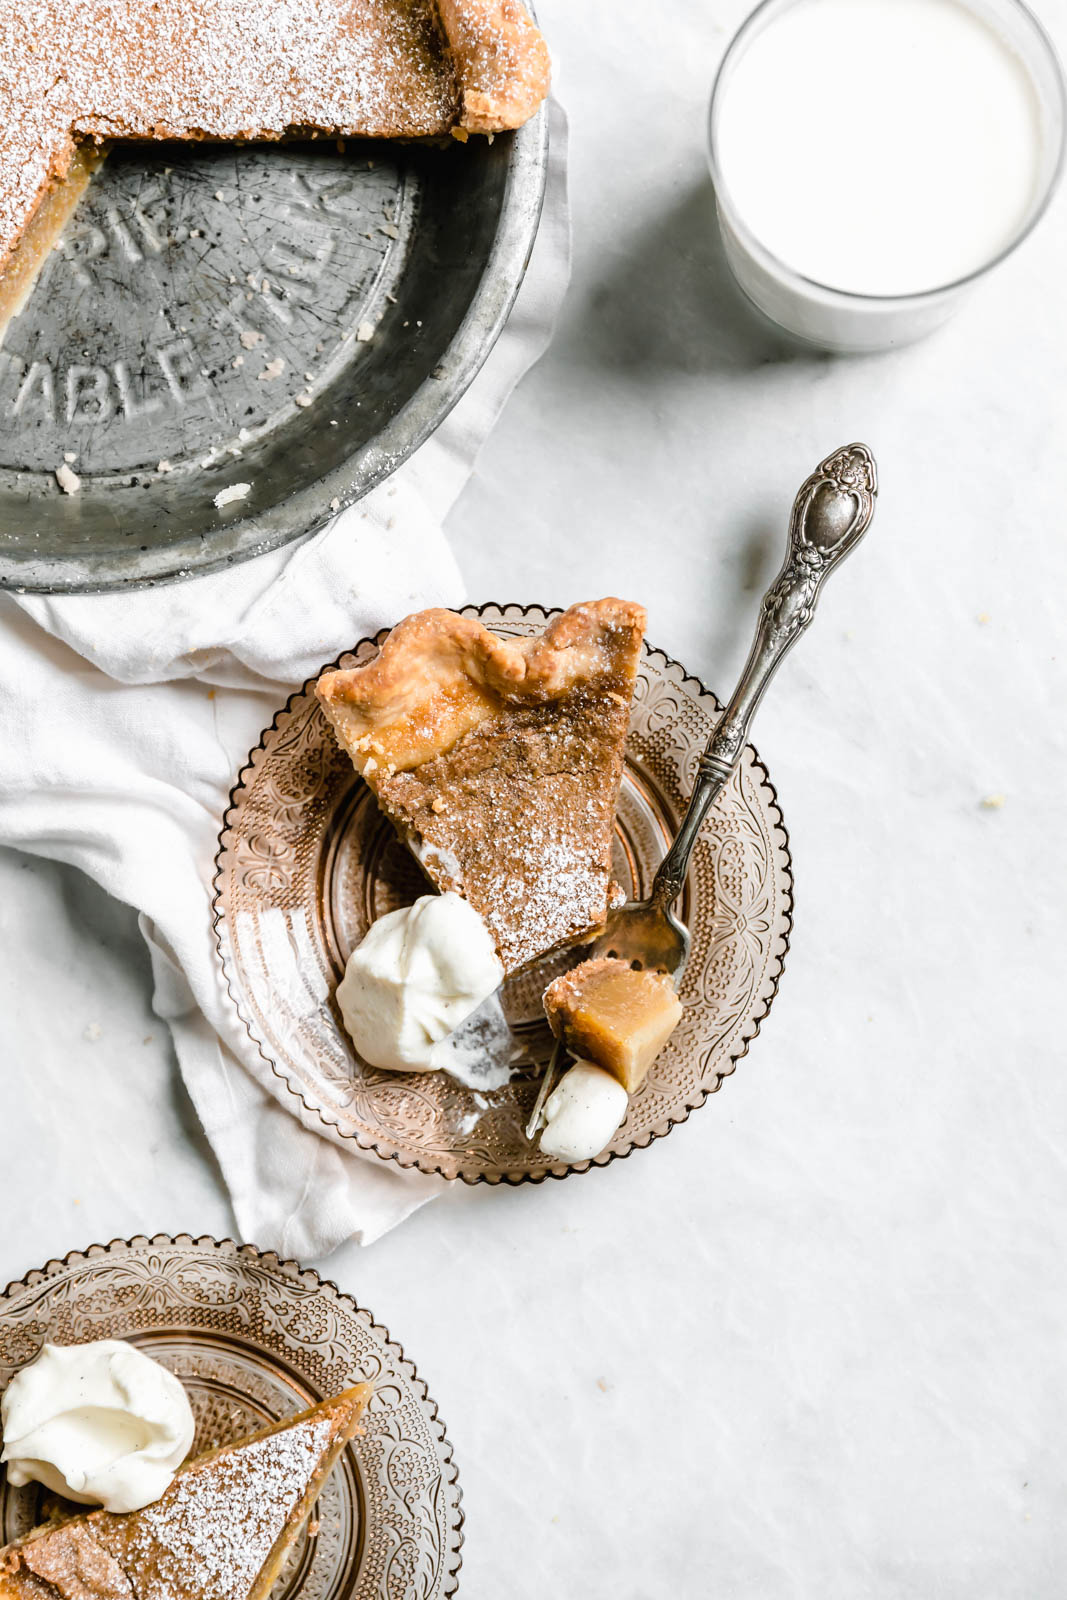 slice of Brown Butter Maple Chess Pie on glass plate